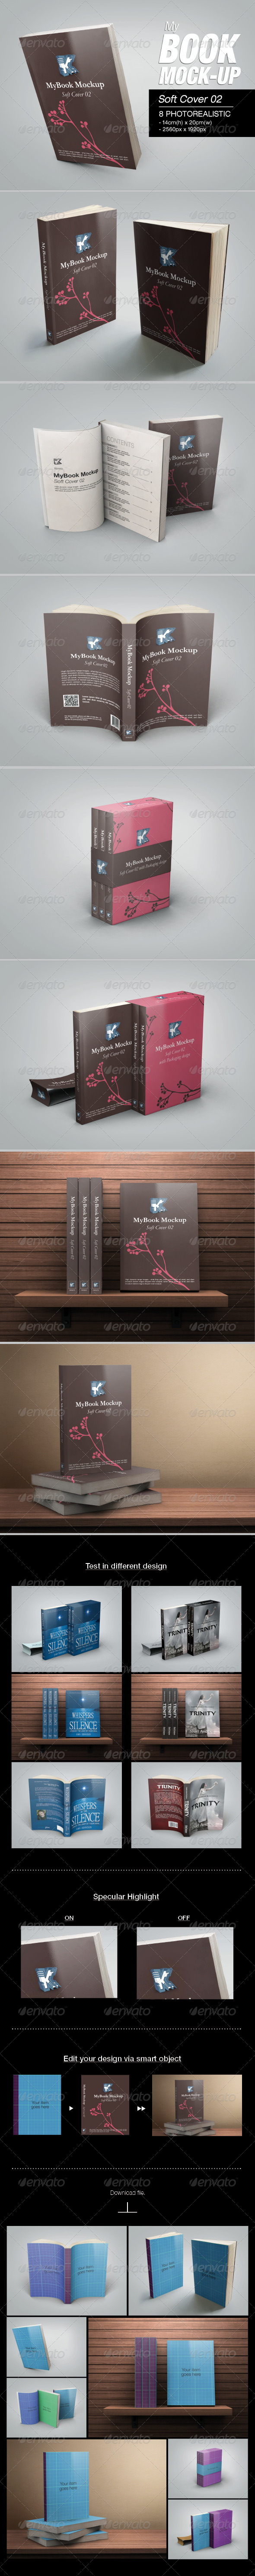 GraphicRiver MyBook Mock-up Soft Cover 02 6828697